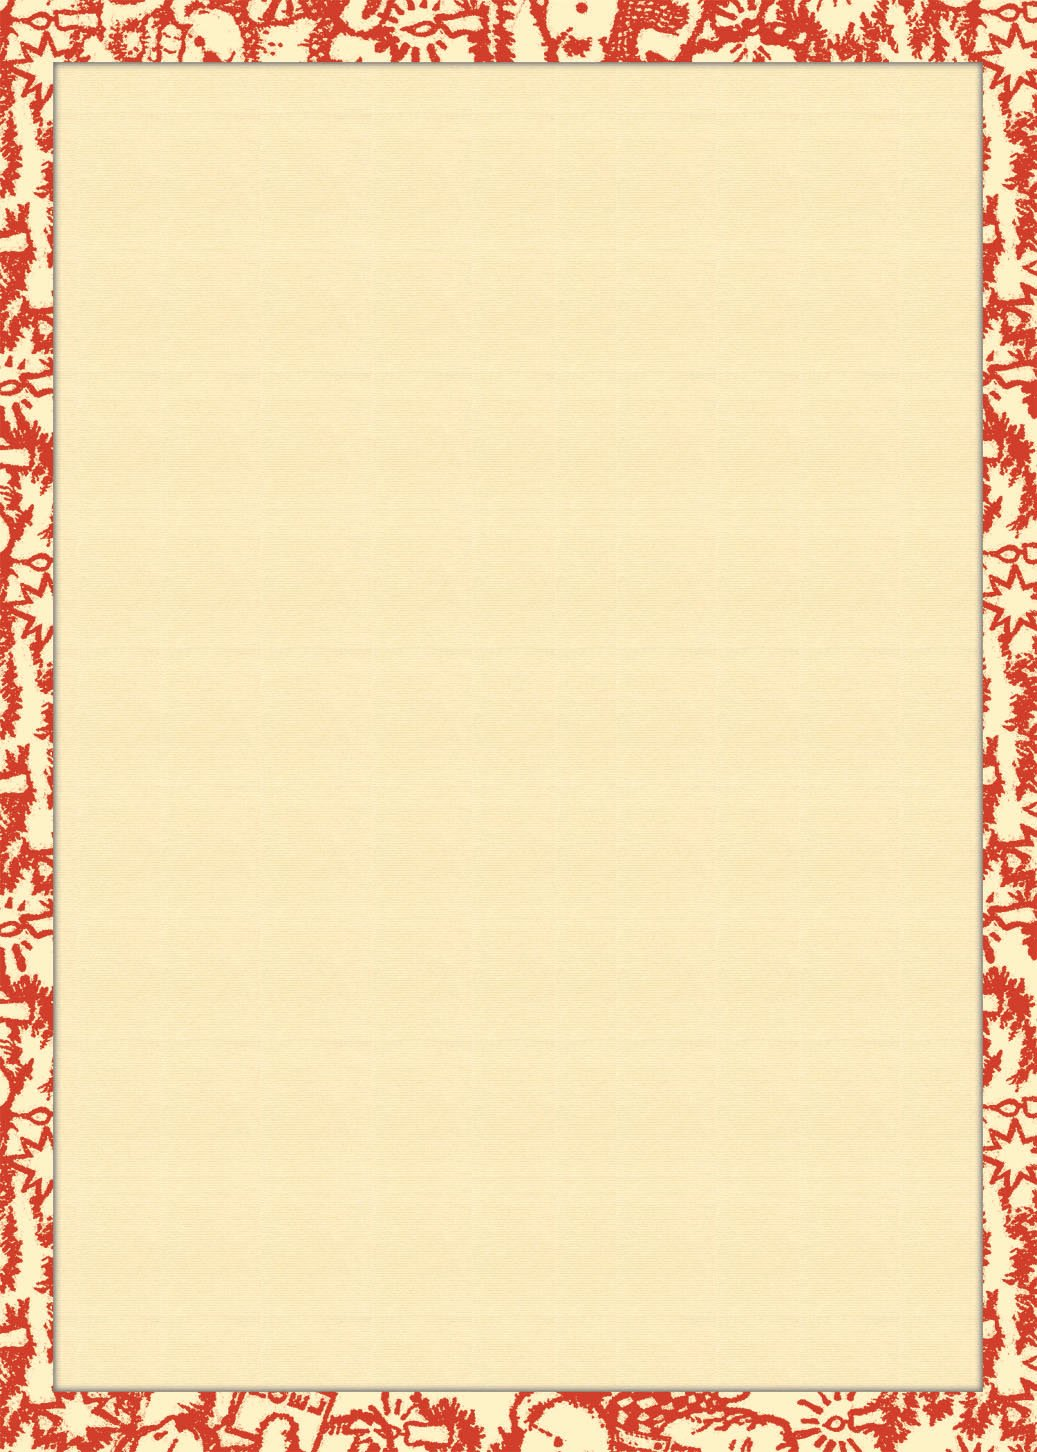 Free Printable Stationery Template Unique 5 Best Of Free Printable Disney Stationery